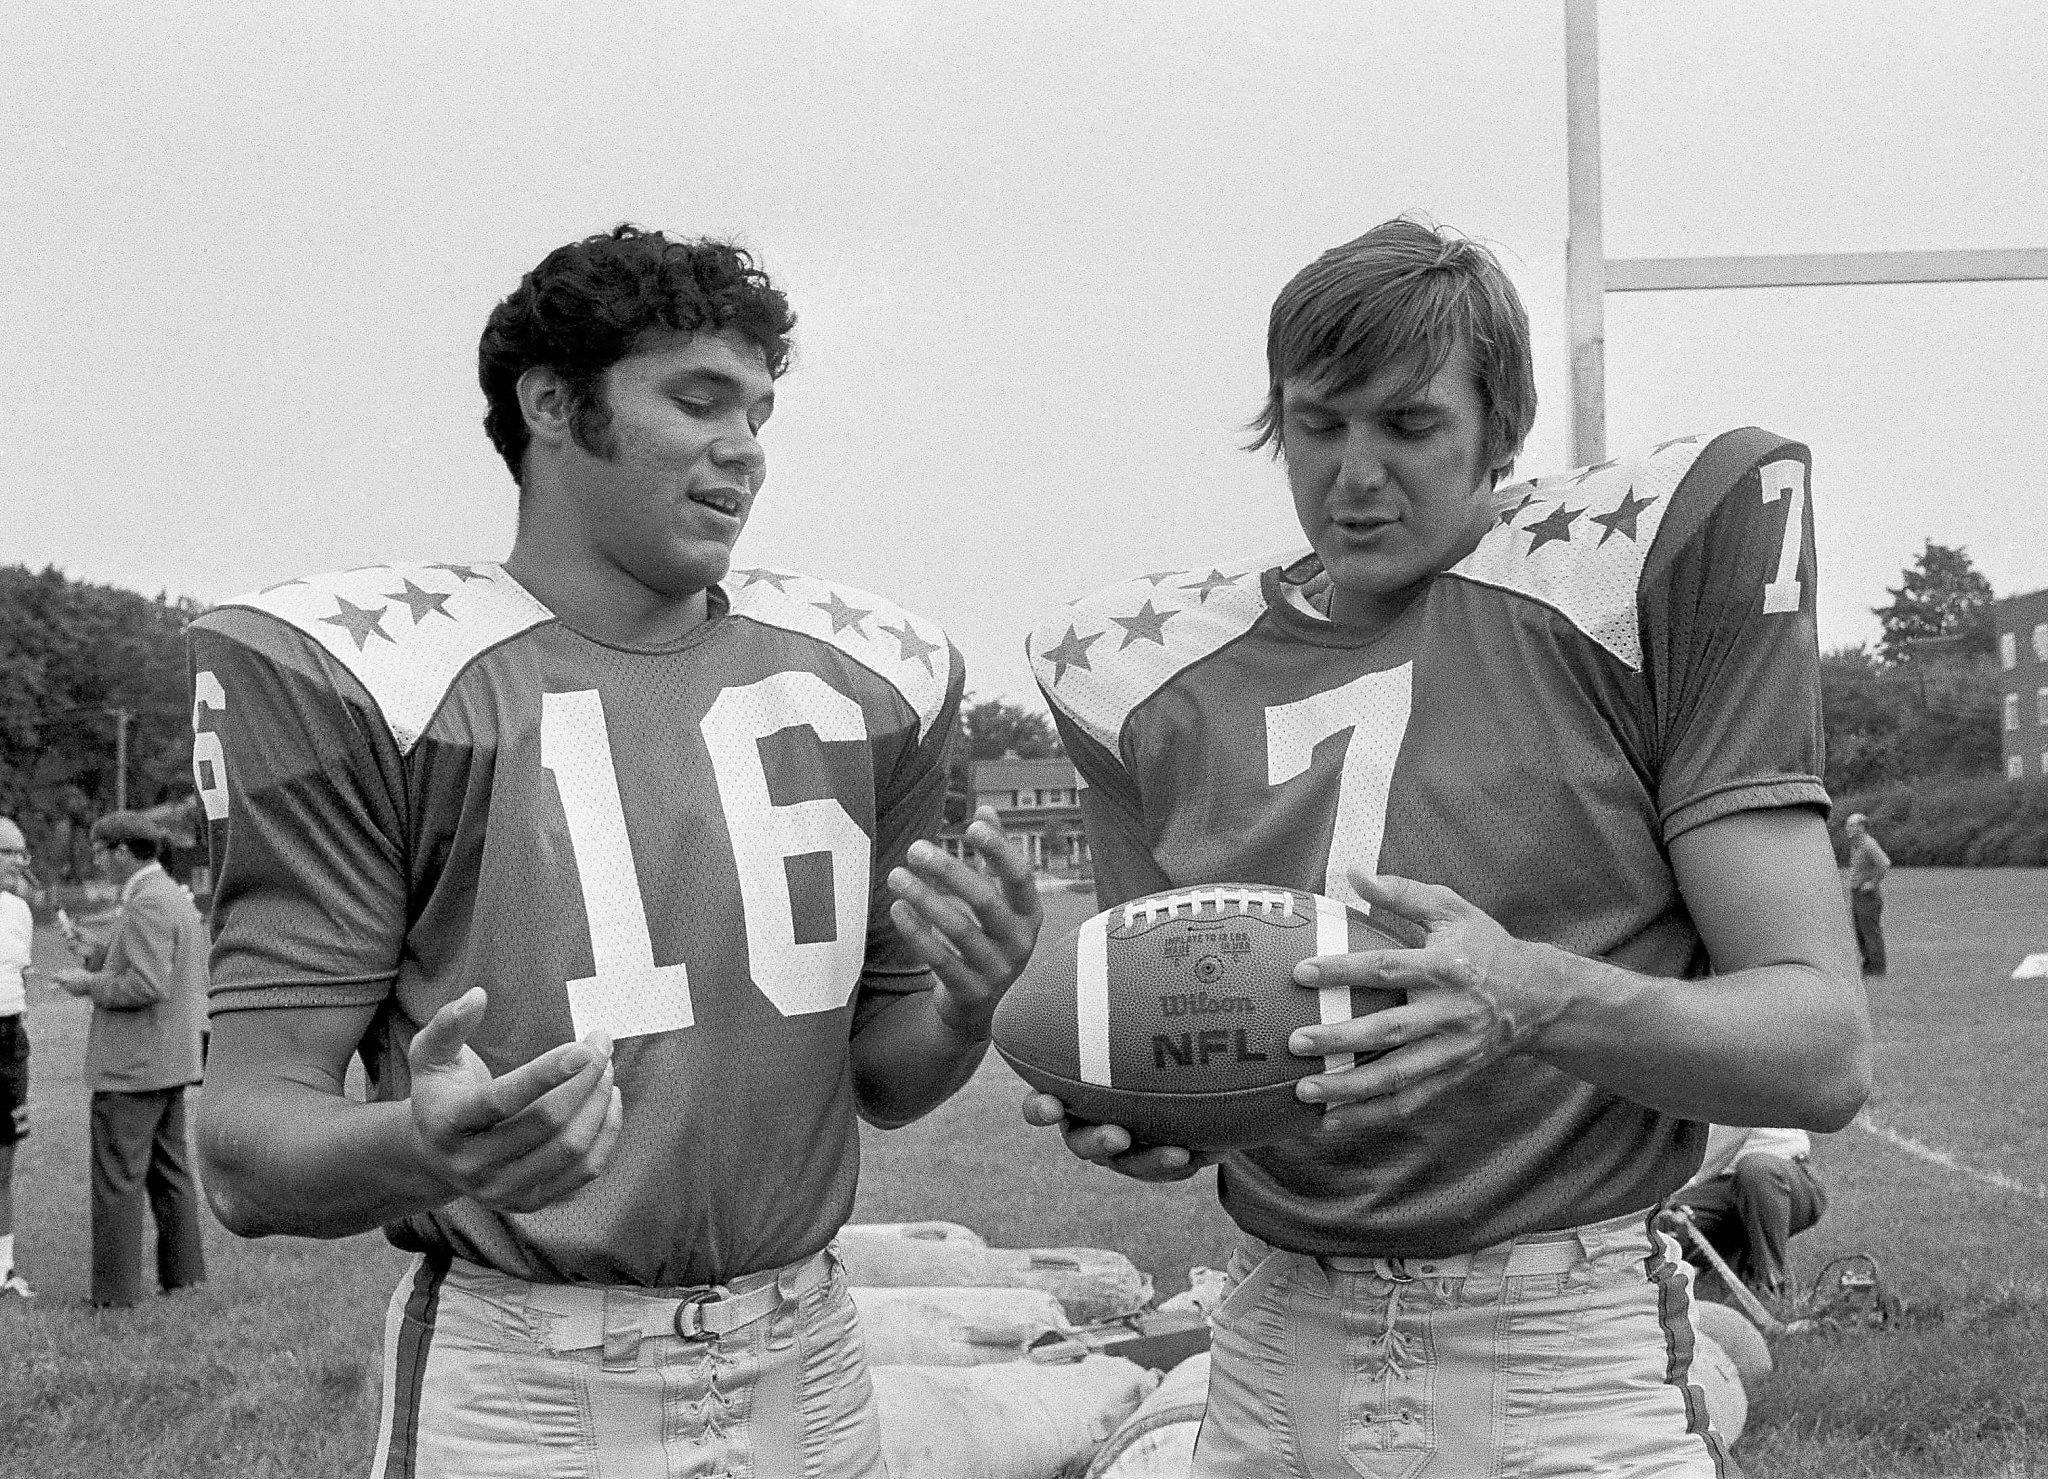 NFL at 100: How college football became the pipeline to NFL - SFGate